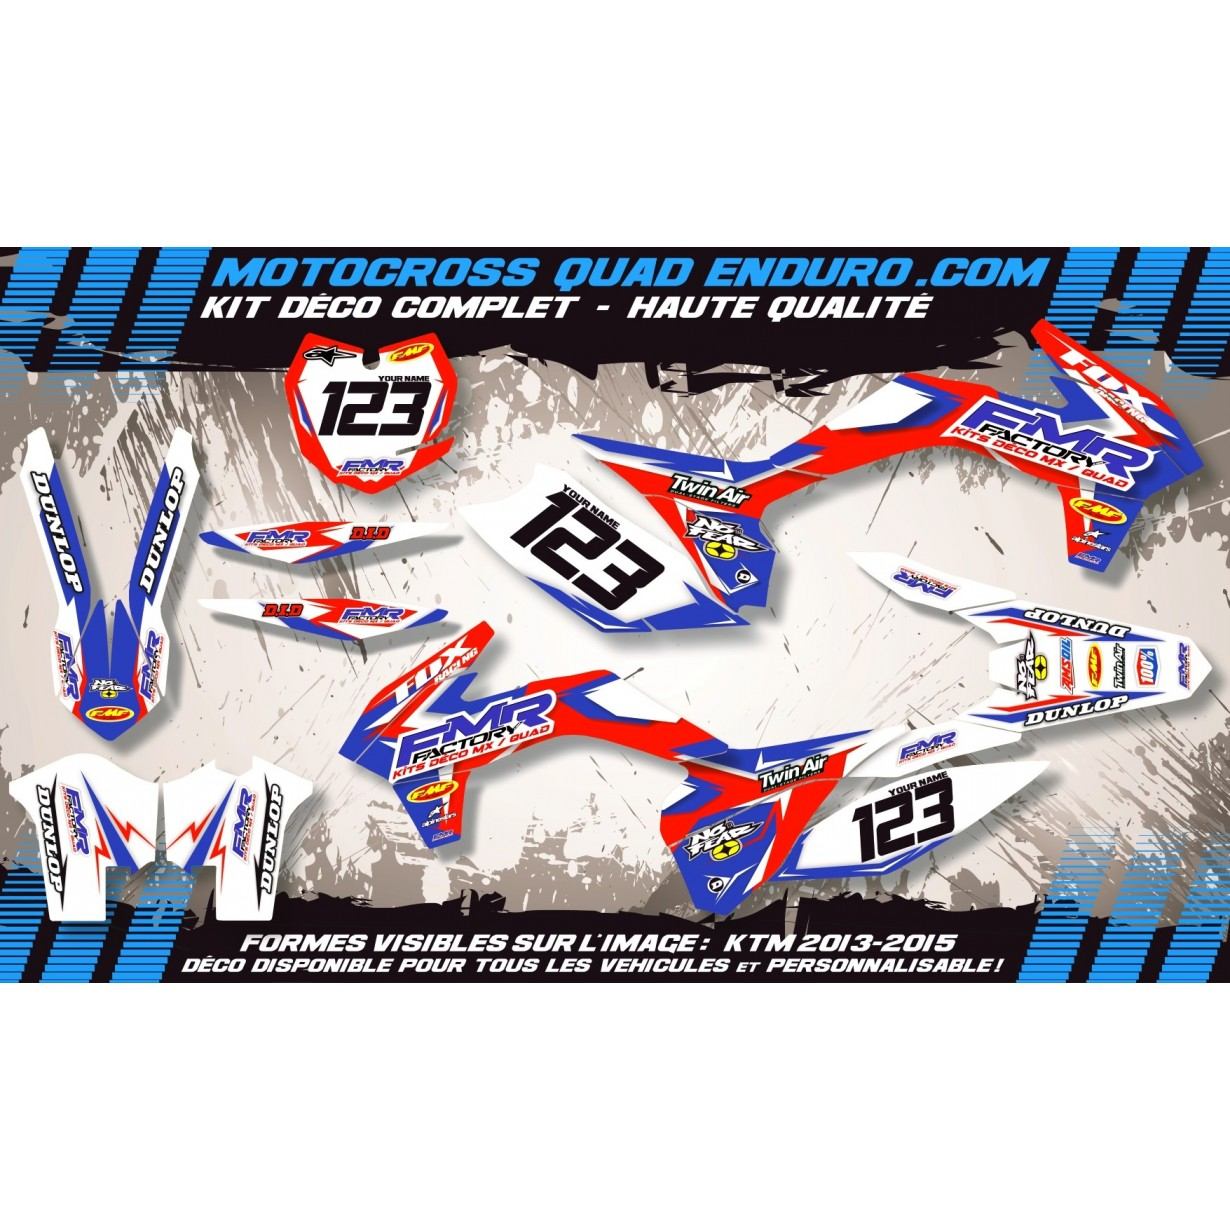 KIT DÉCO Perso 650 XR 00-09 Fmr Factory MA13A